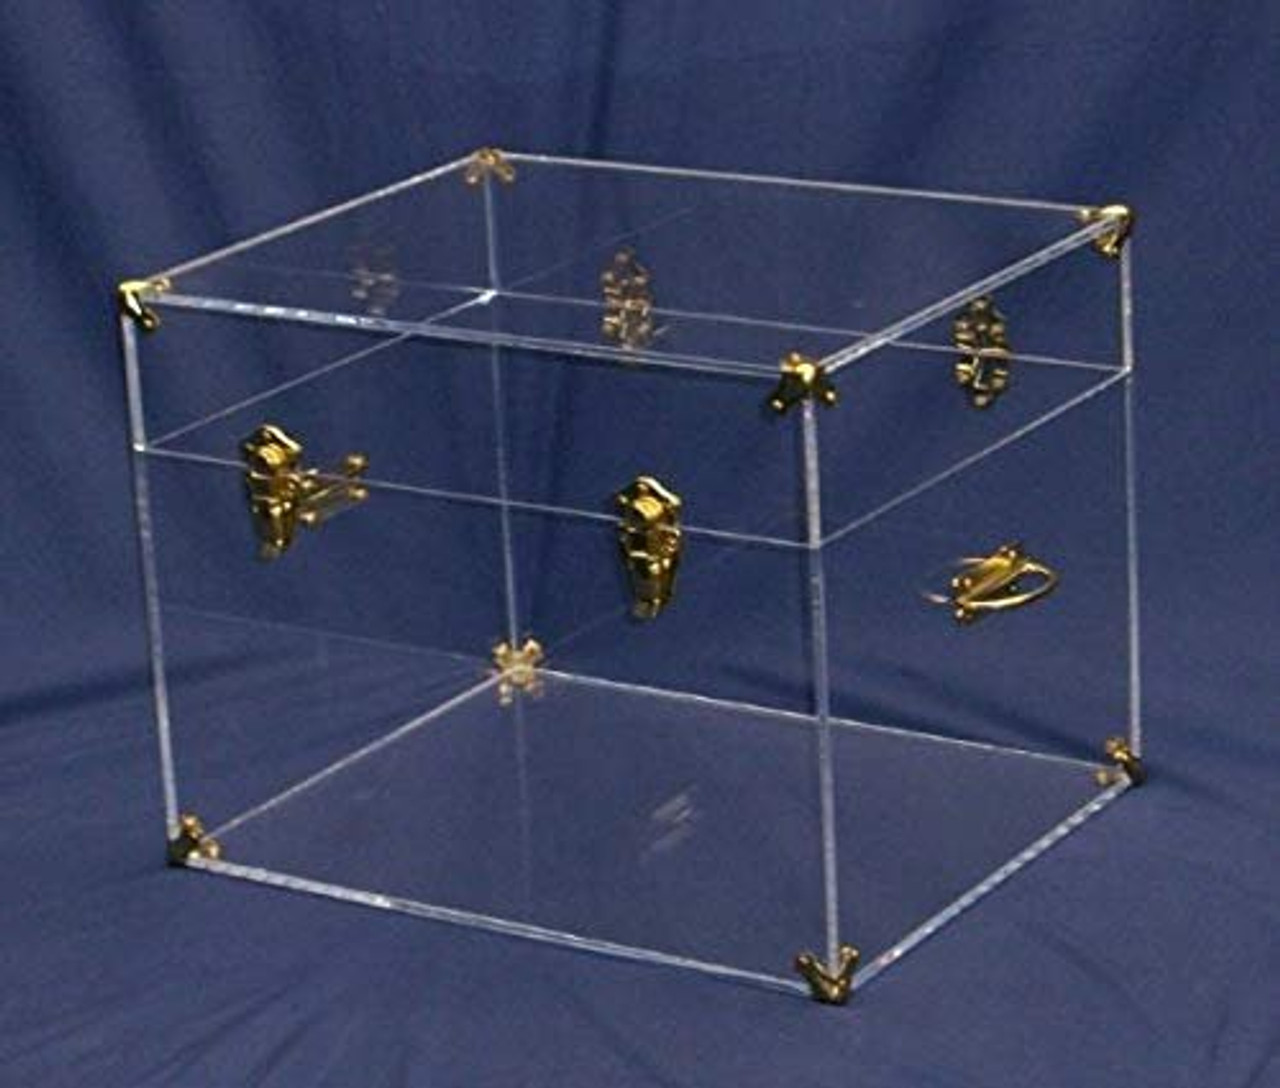 Flat-Top Acrylic Chest, Brass Hardware, 20 inches Wide x 16 inches deep x 15.5 high